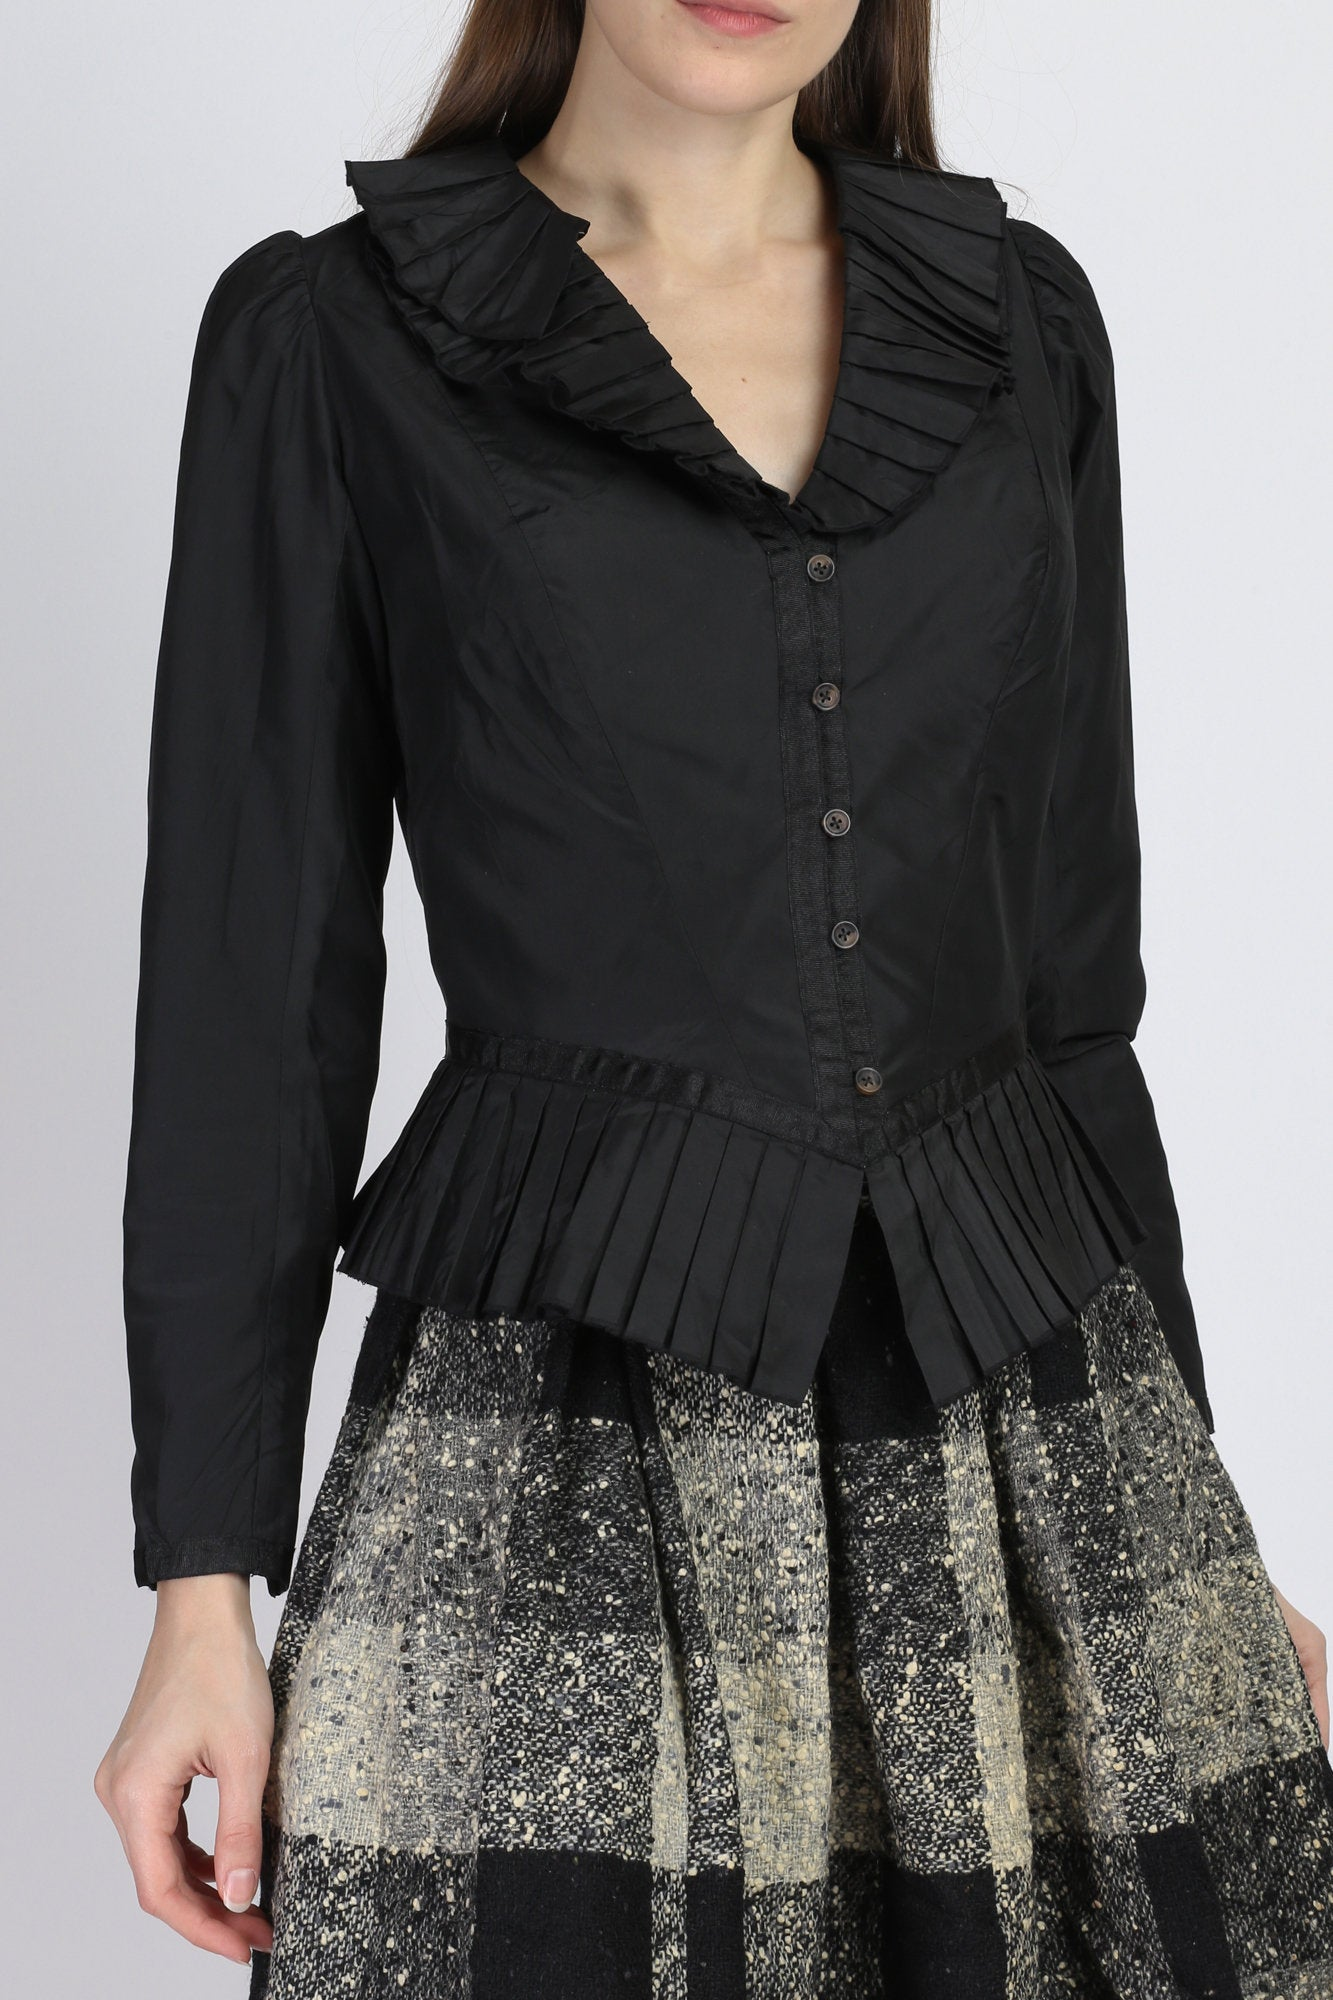 Vintage Tadashi Black Pleated Victorian Blouse - Small